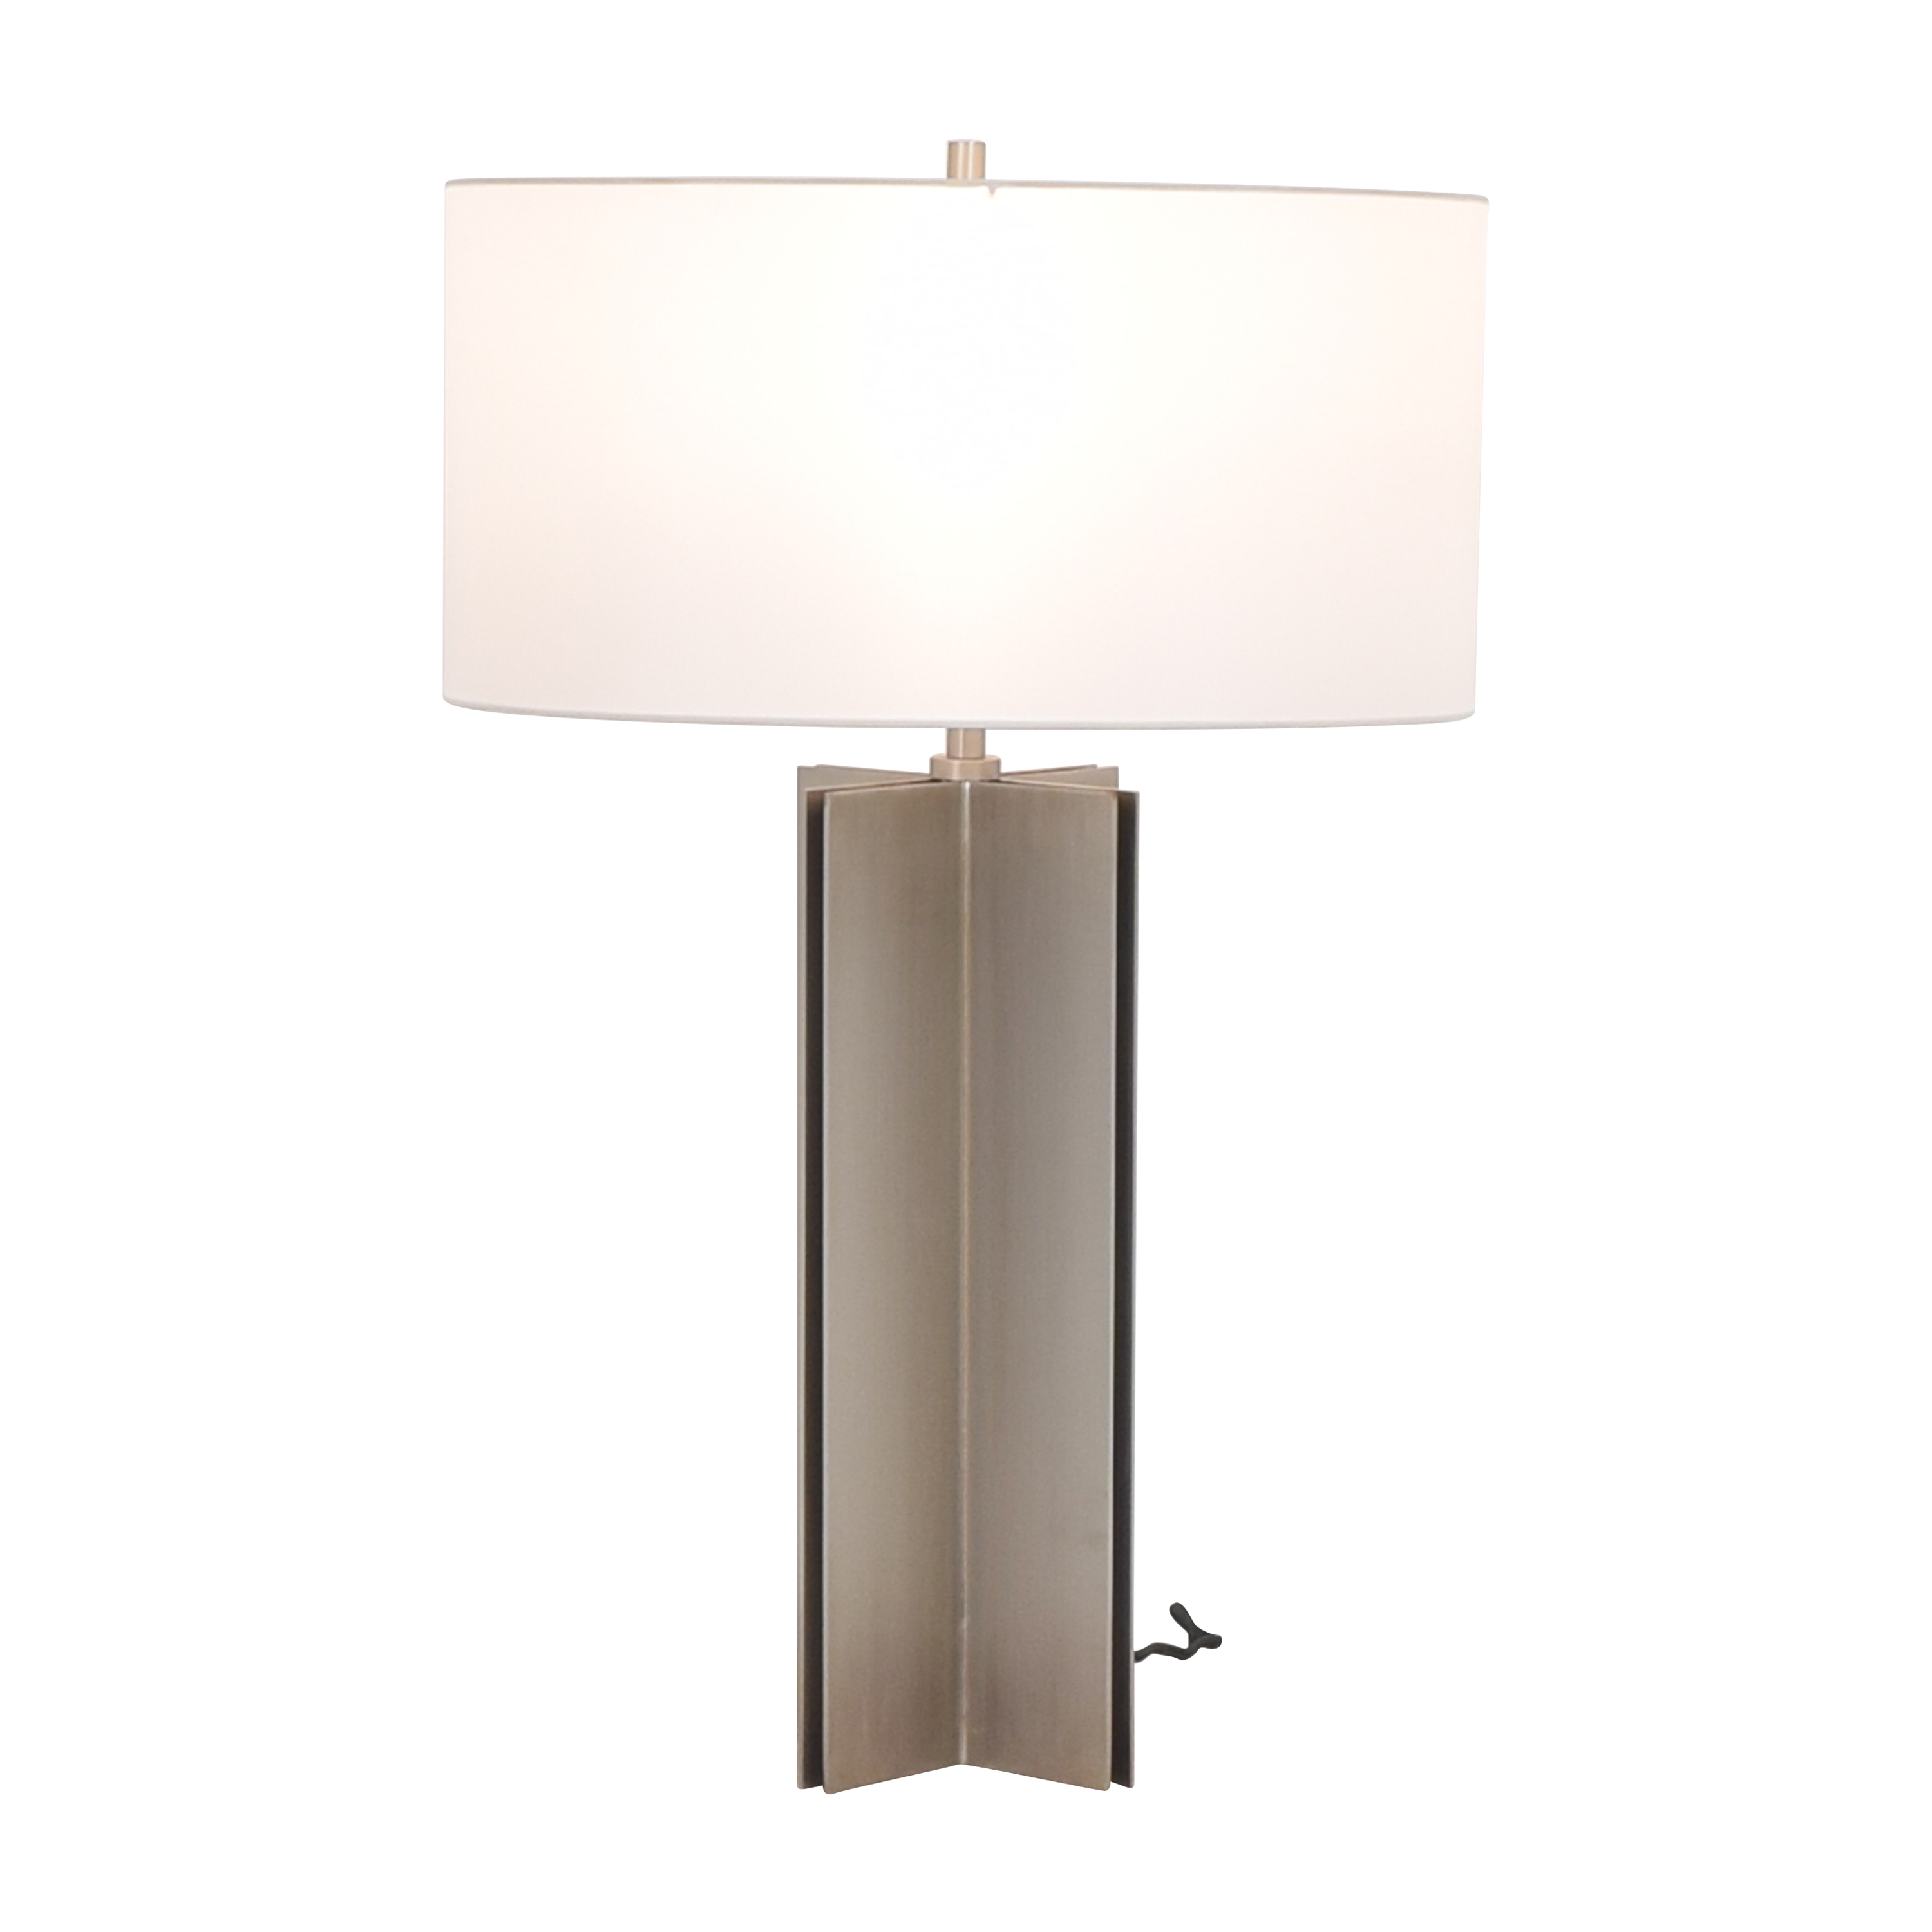 Restoration Hardware Bryson Table Lamp / Lamps